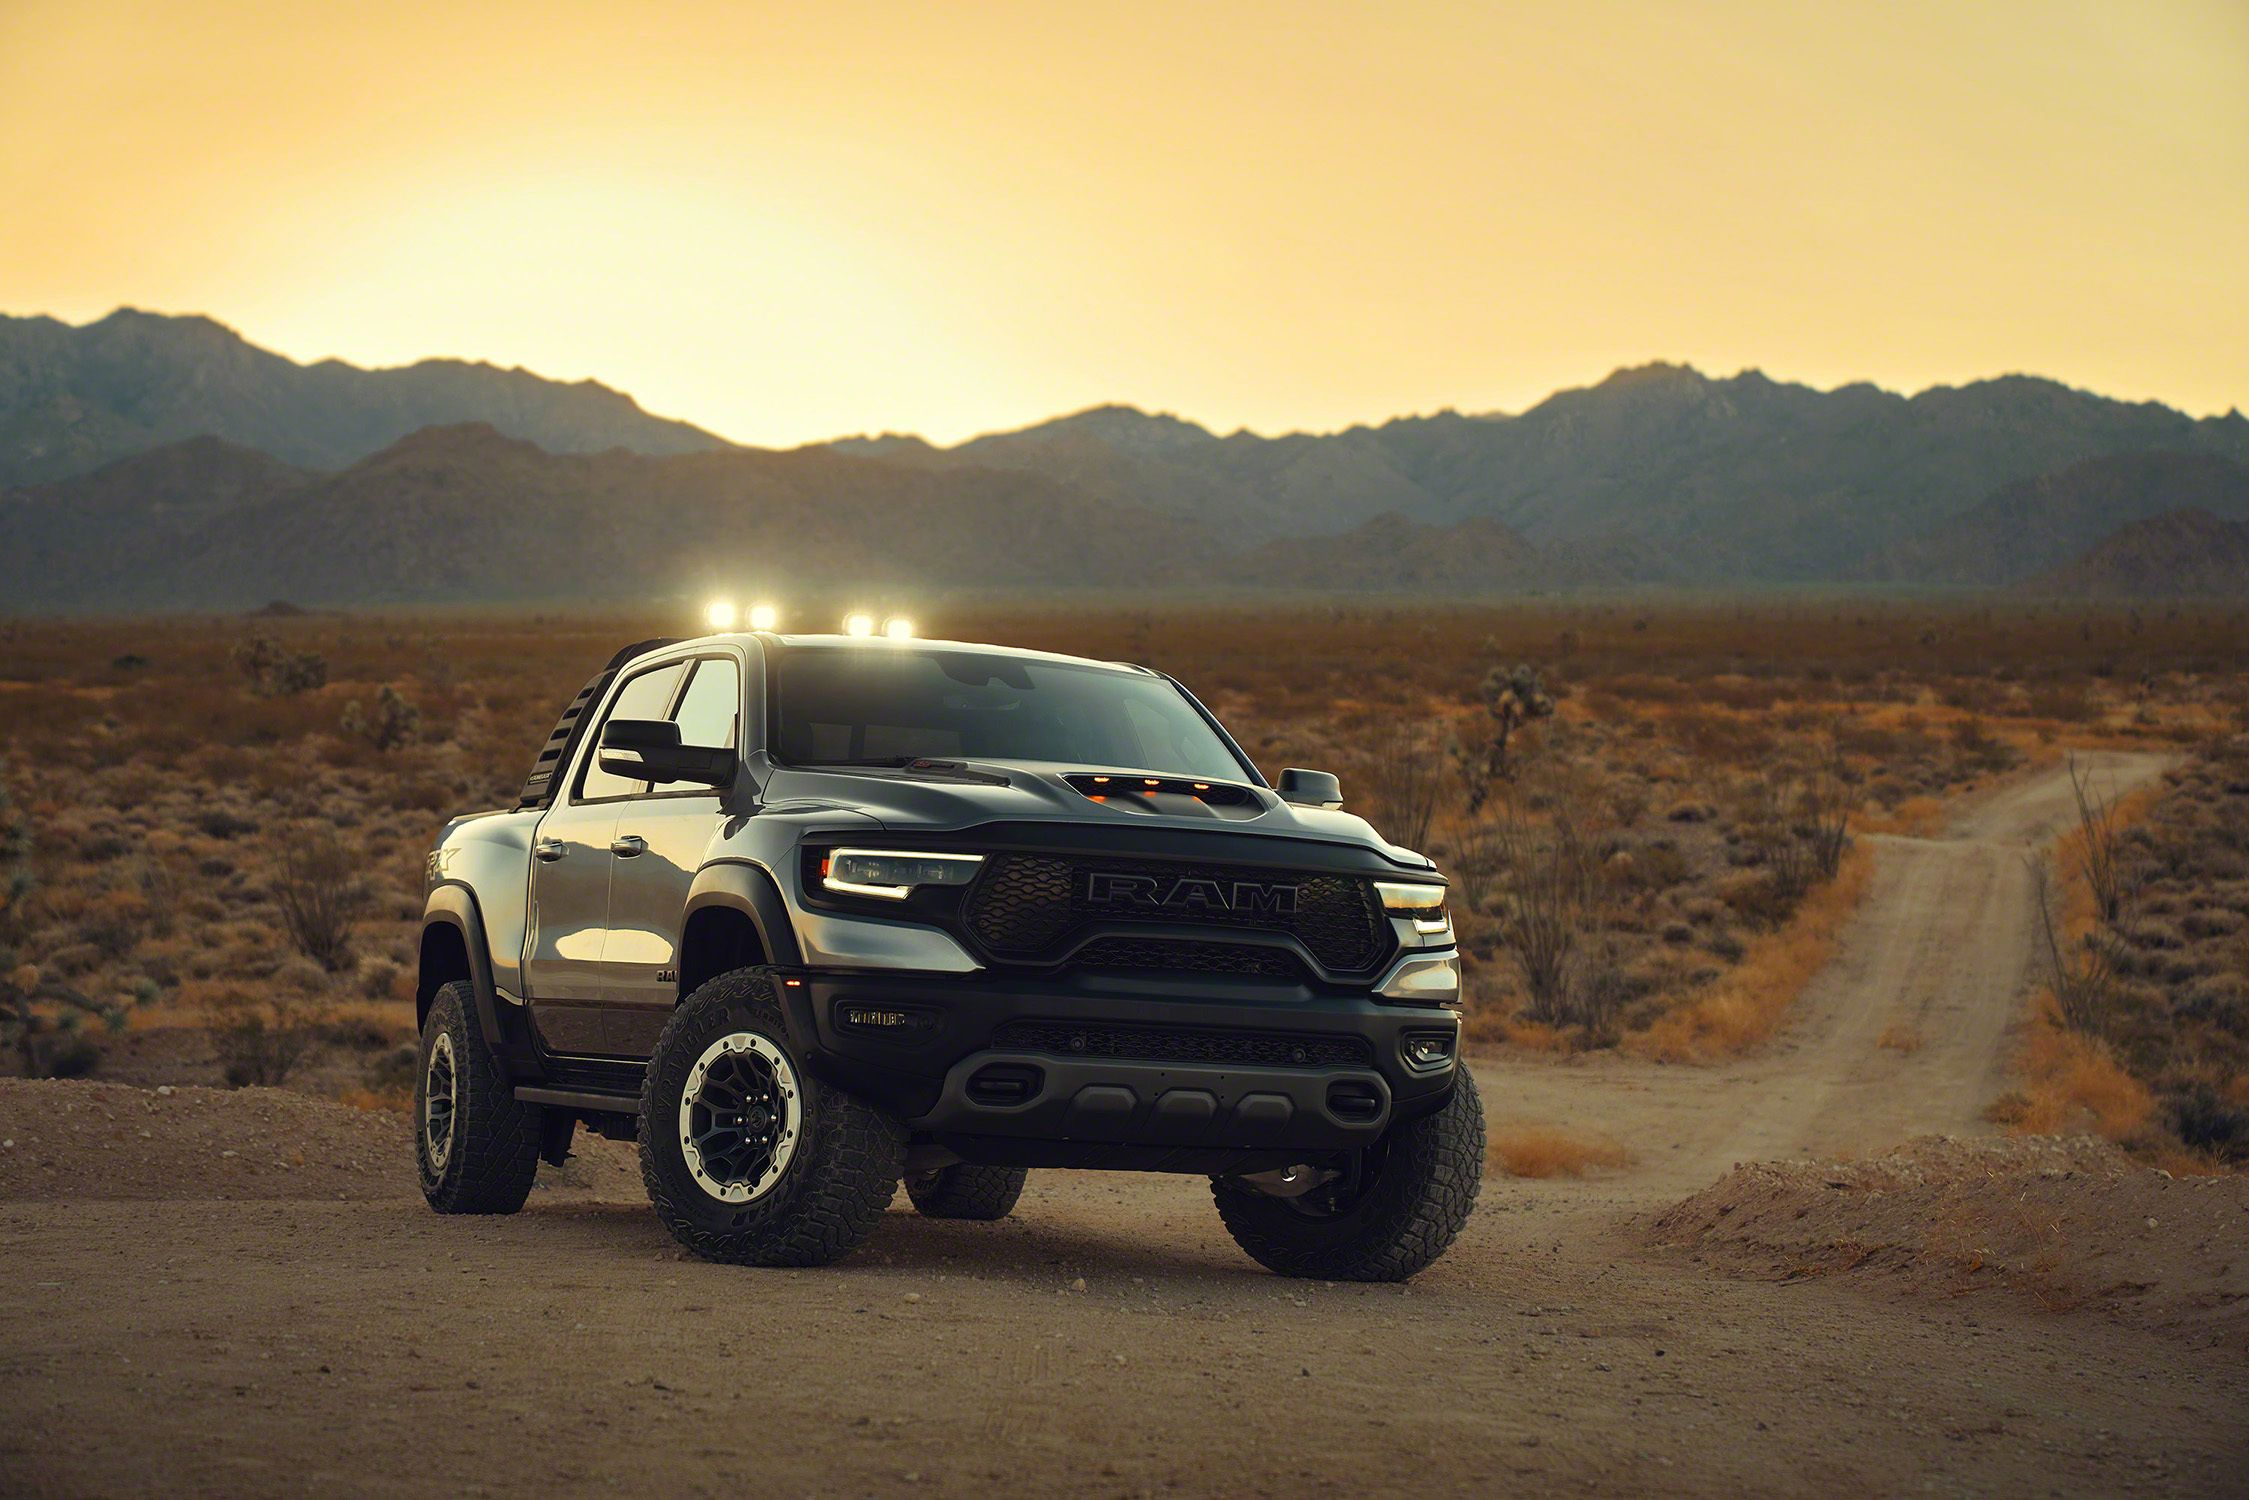 2021 Ram 1500 Trx Priced At 70k Launch Edition Tops 90k